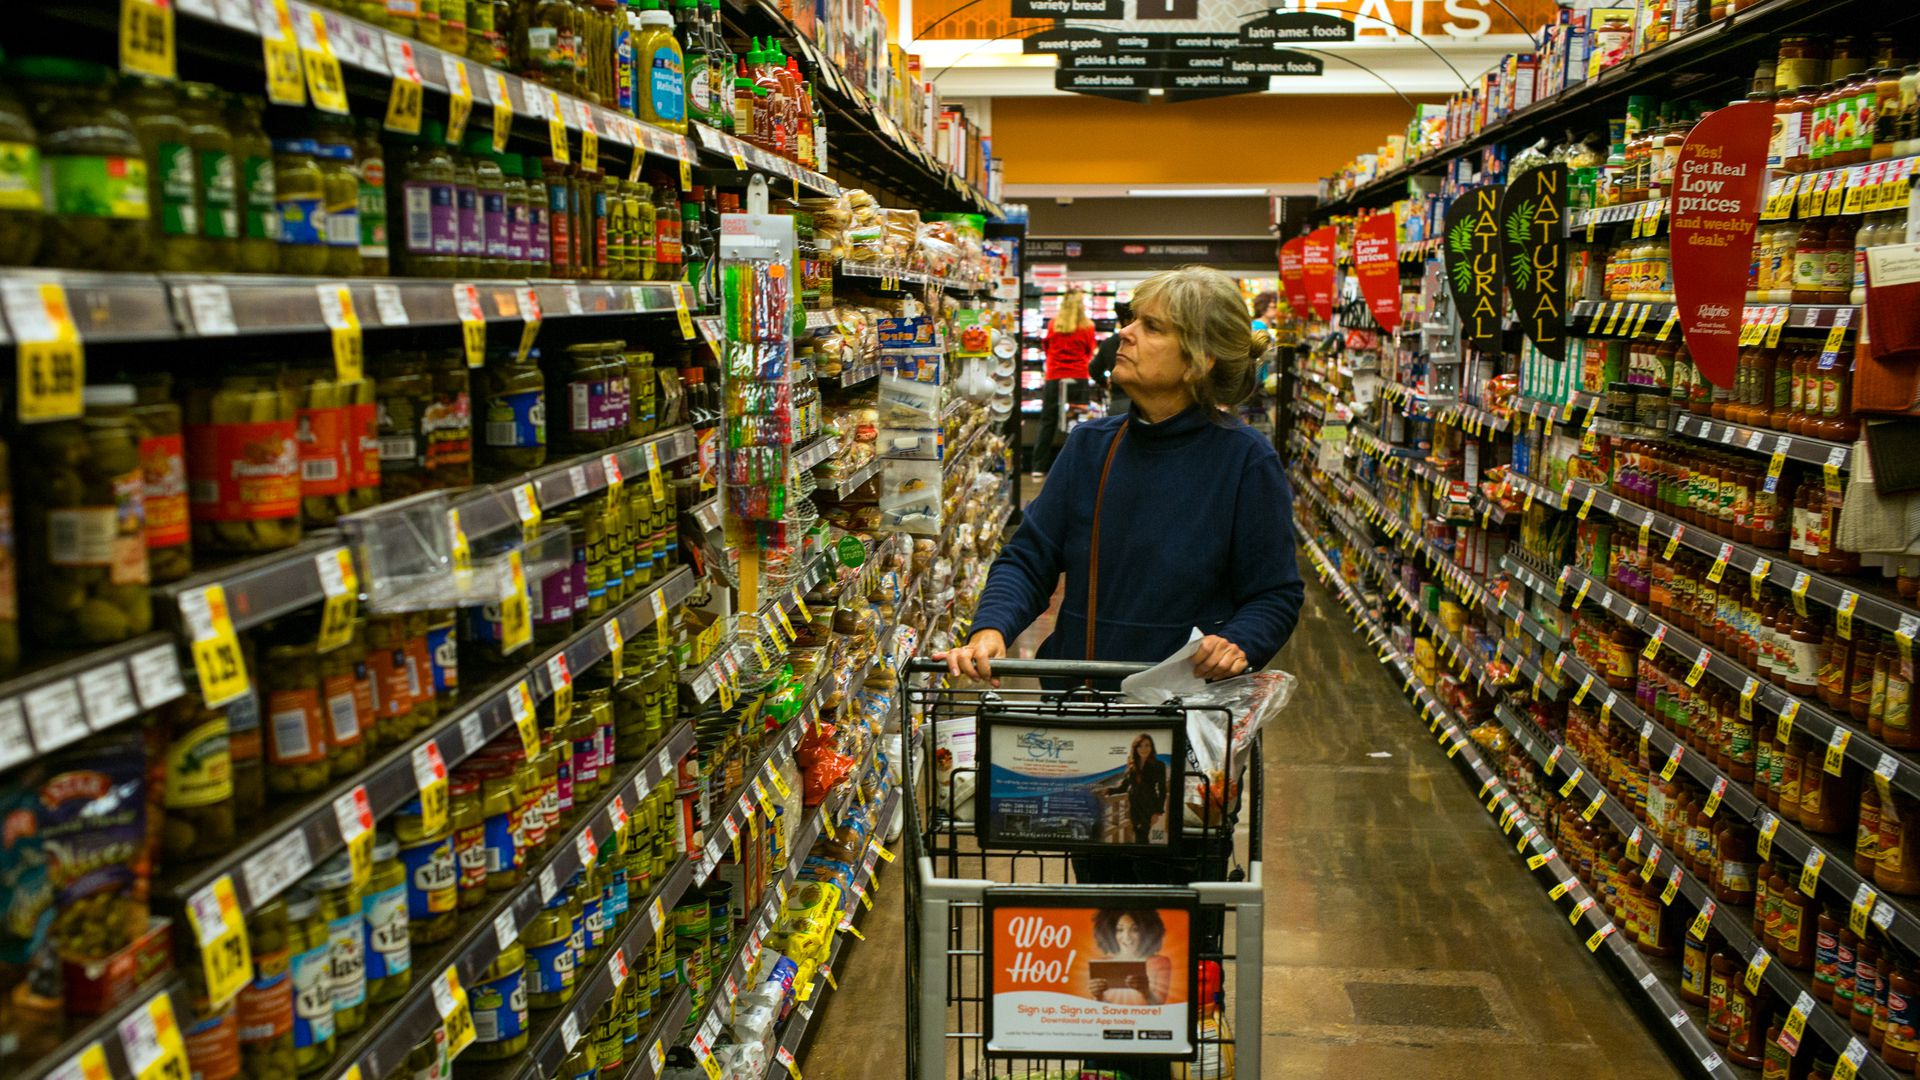 A woman browses products in an aisle